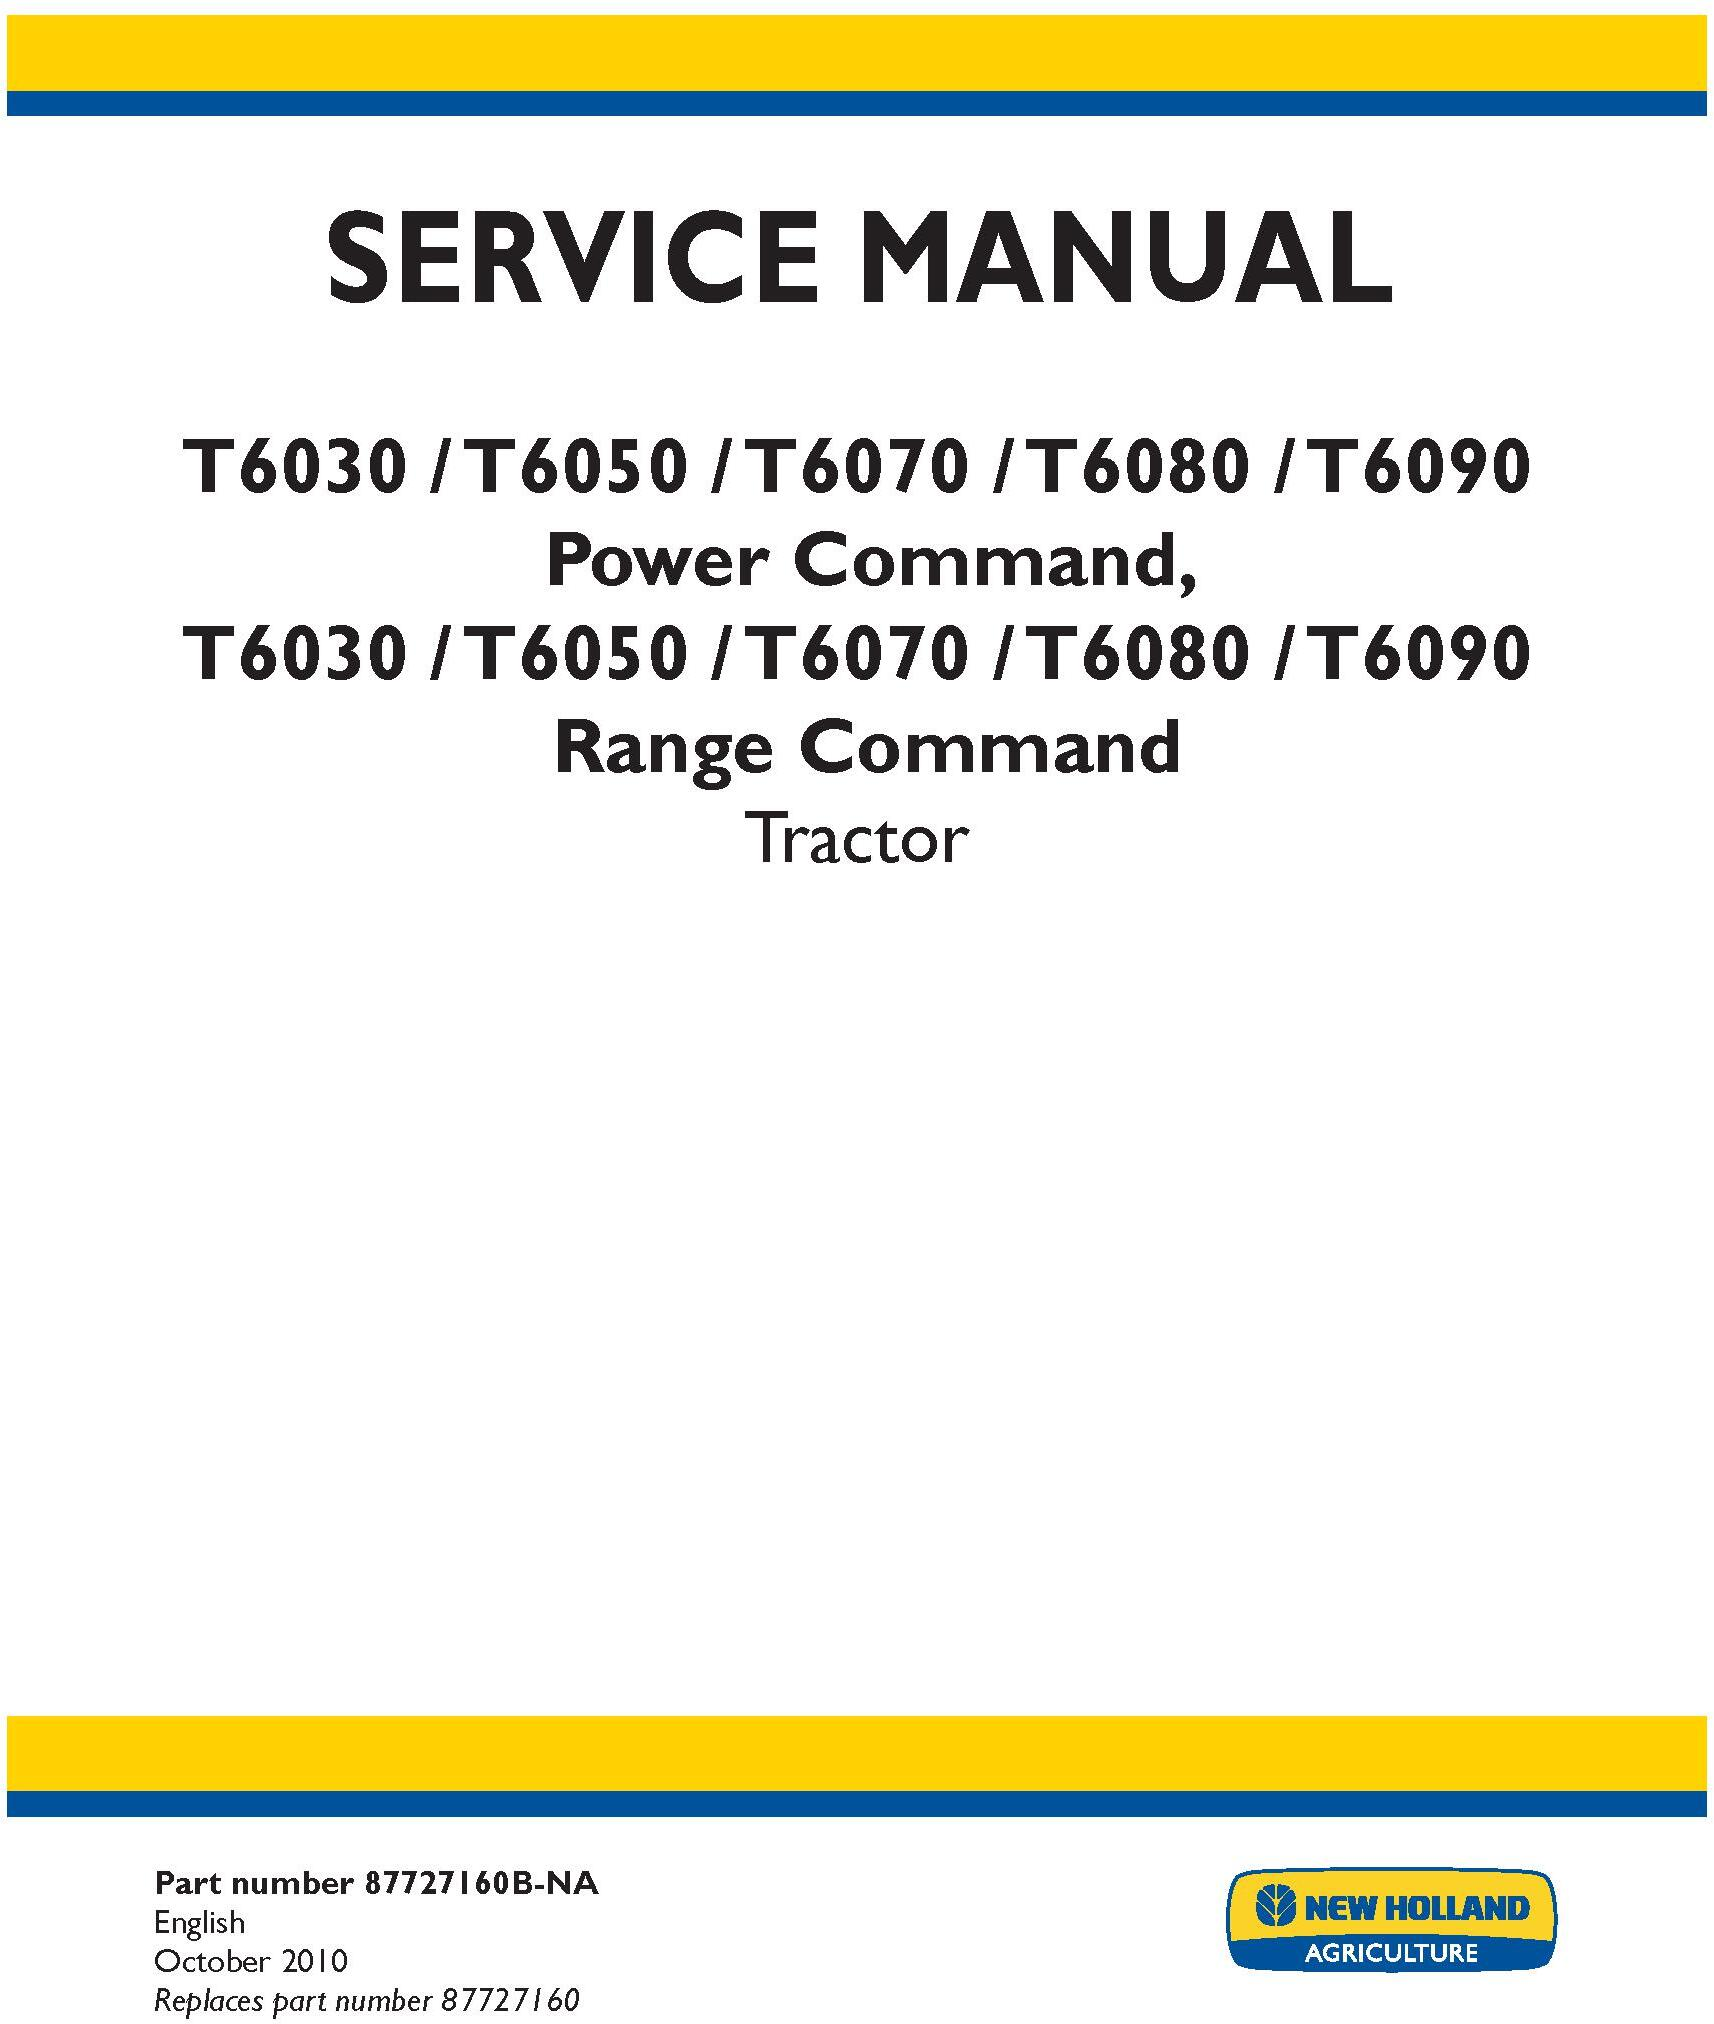 New Holland T6030, T6050, T6070, T6080, T6090 Power Command, Range Command Service Manual - 19635